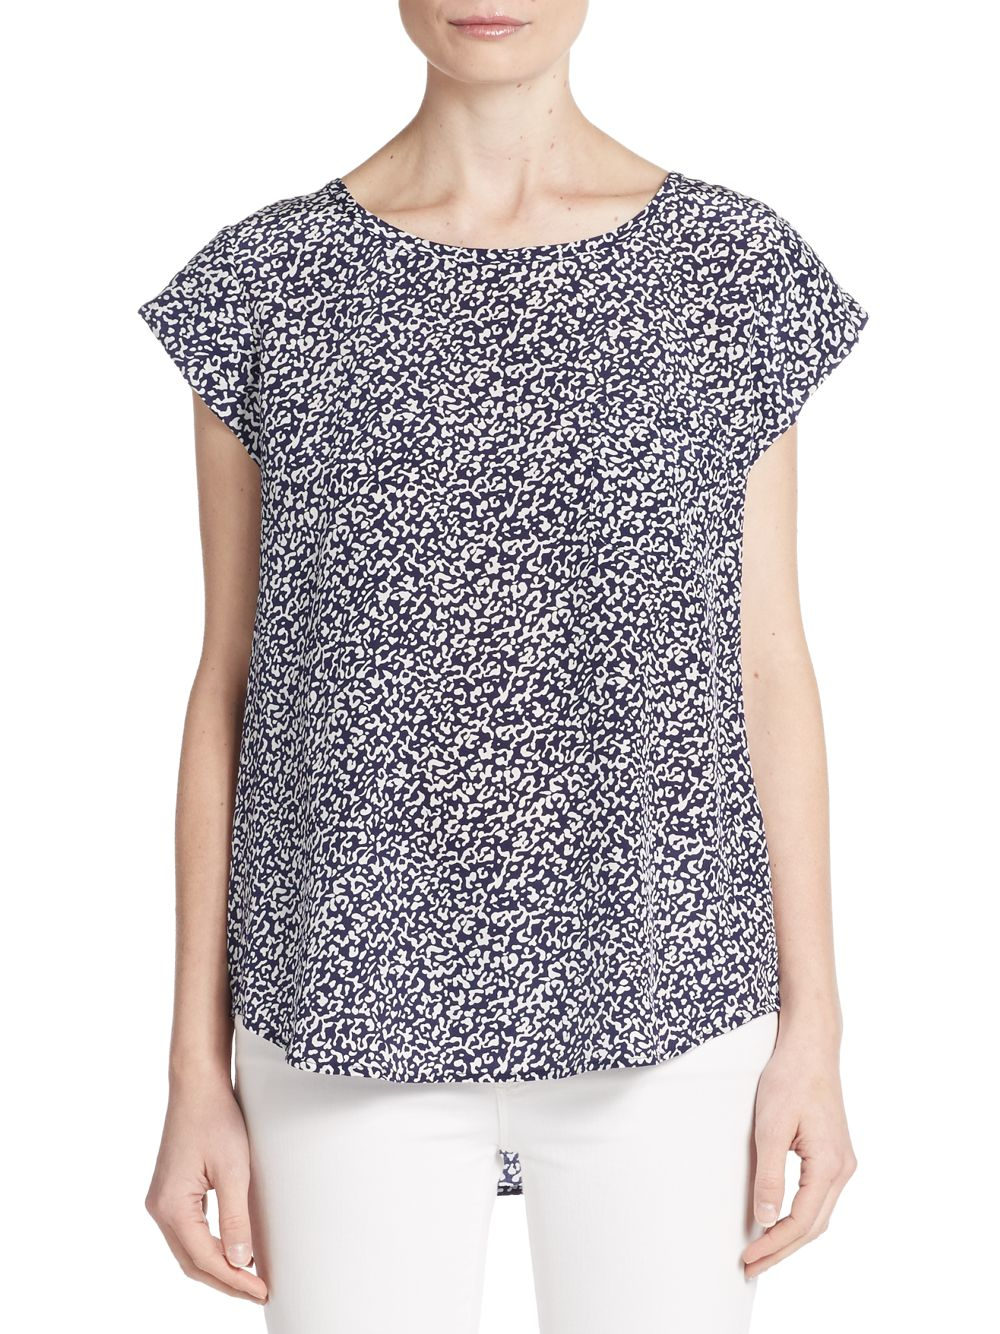 457b2d90d85a Lyst - Joie Rancher Animal-print Silk Top in Blue